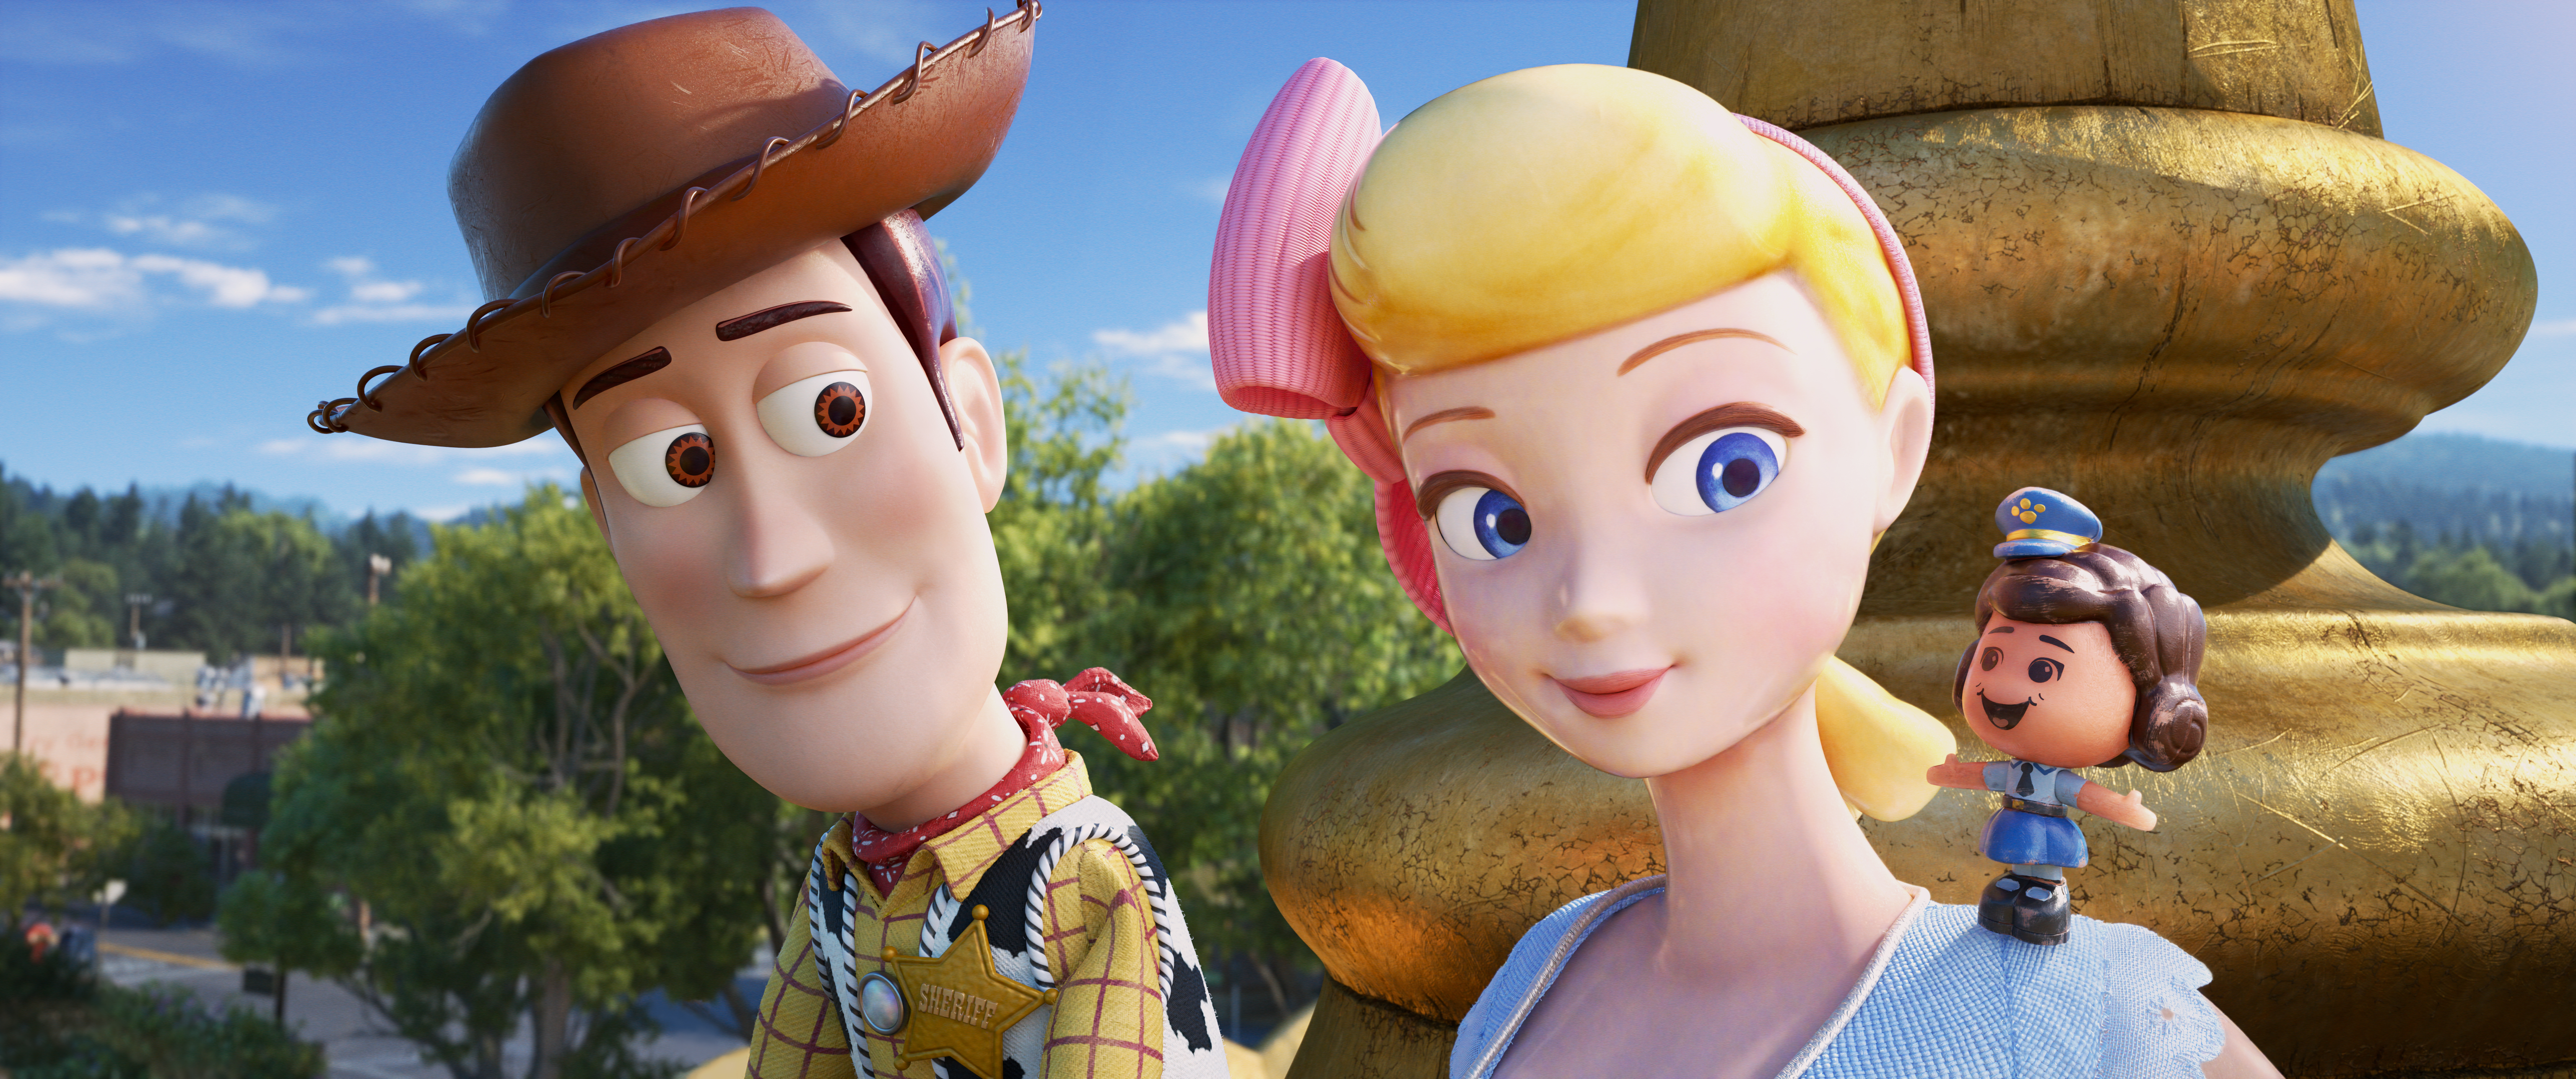 Woody Bo Peep and Giggles McDimples #ToyStory4